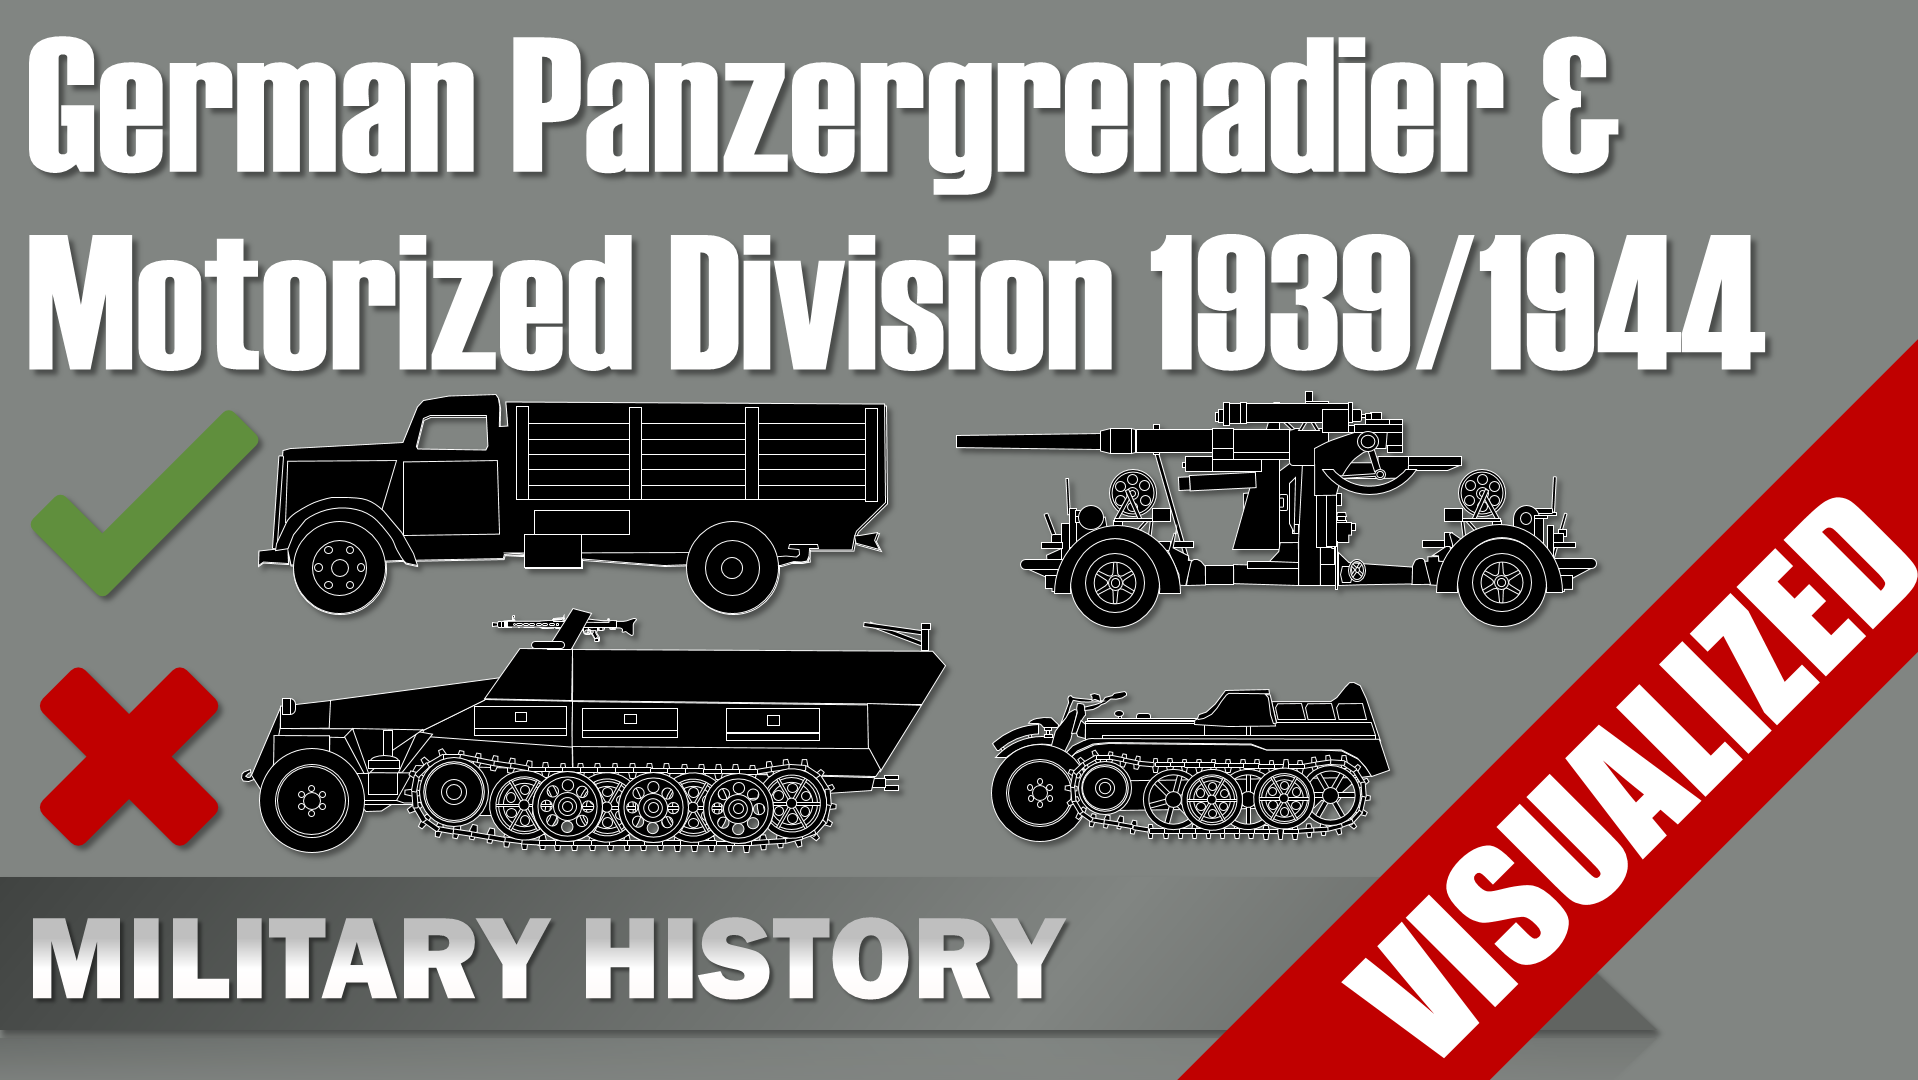 German Panzergrenadier-Division 44 and Motorized Infantry Division 1939